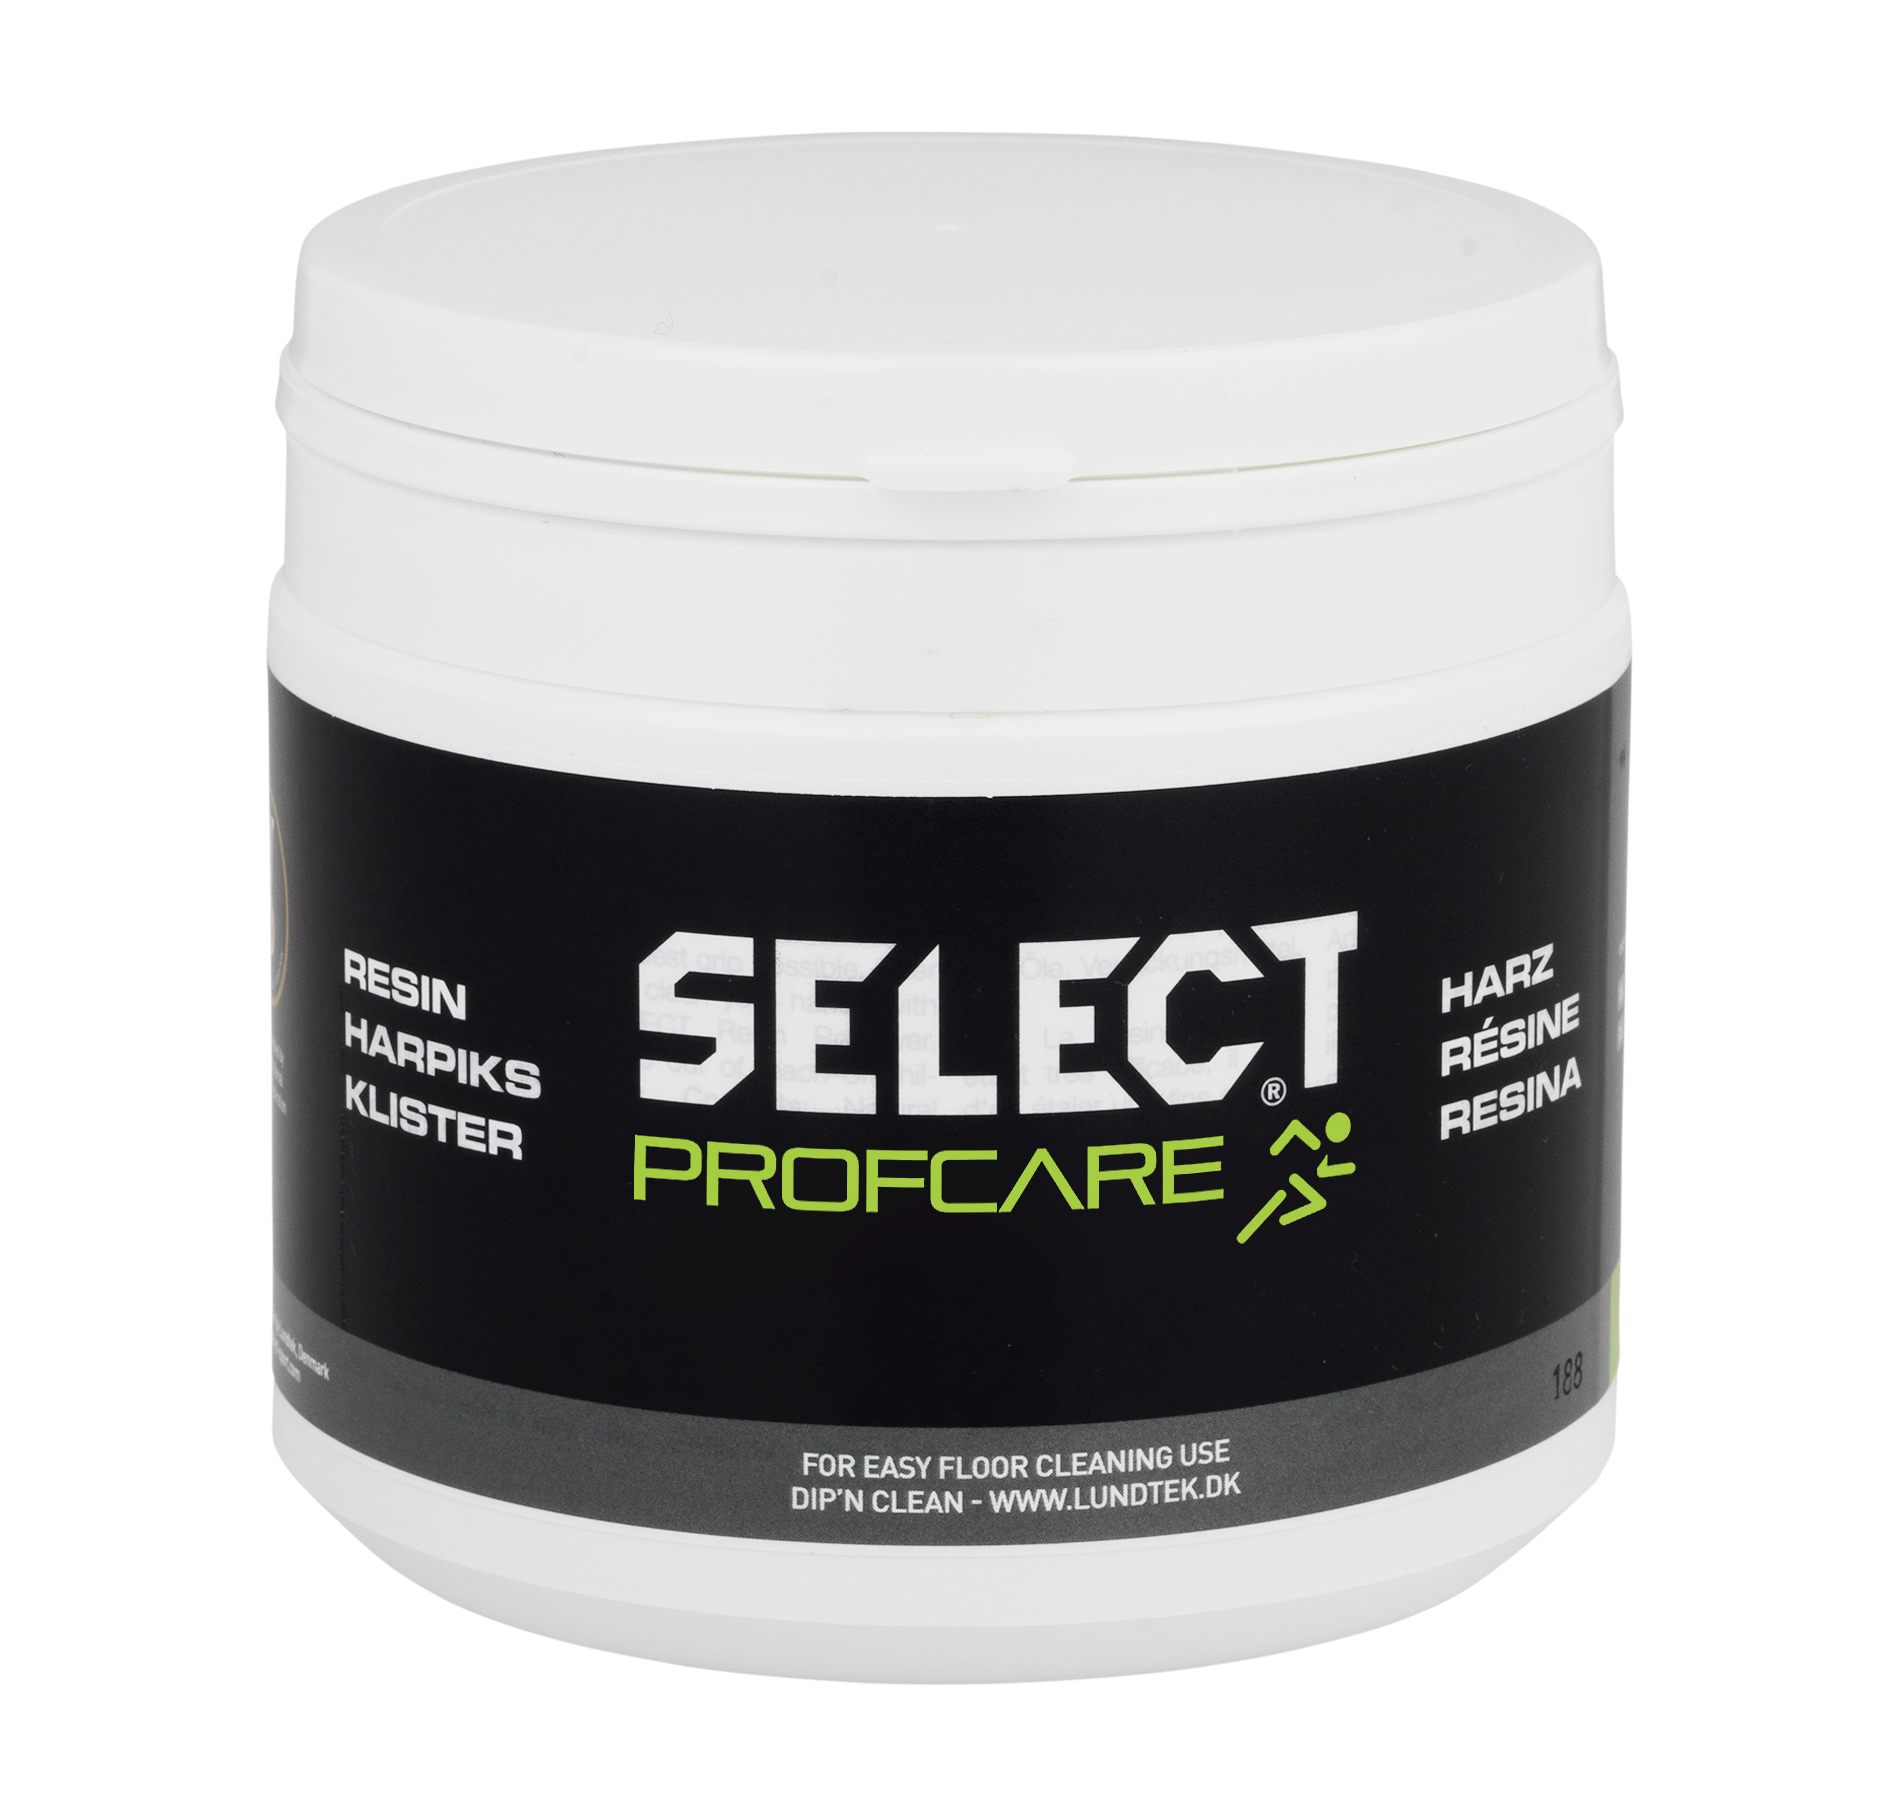 Select Prof Care